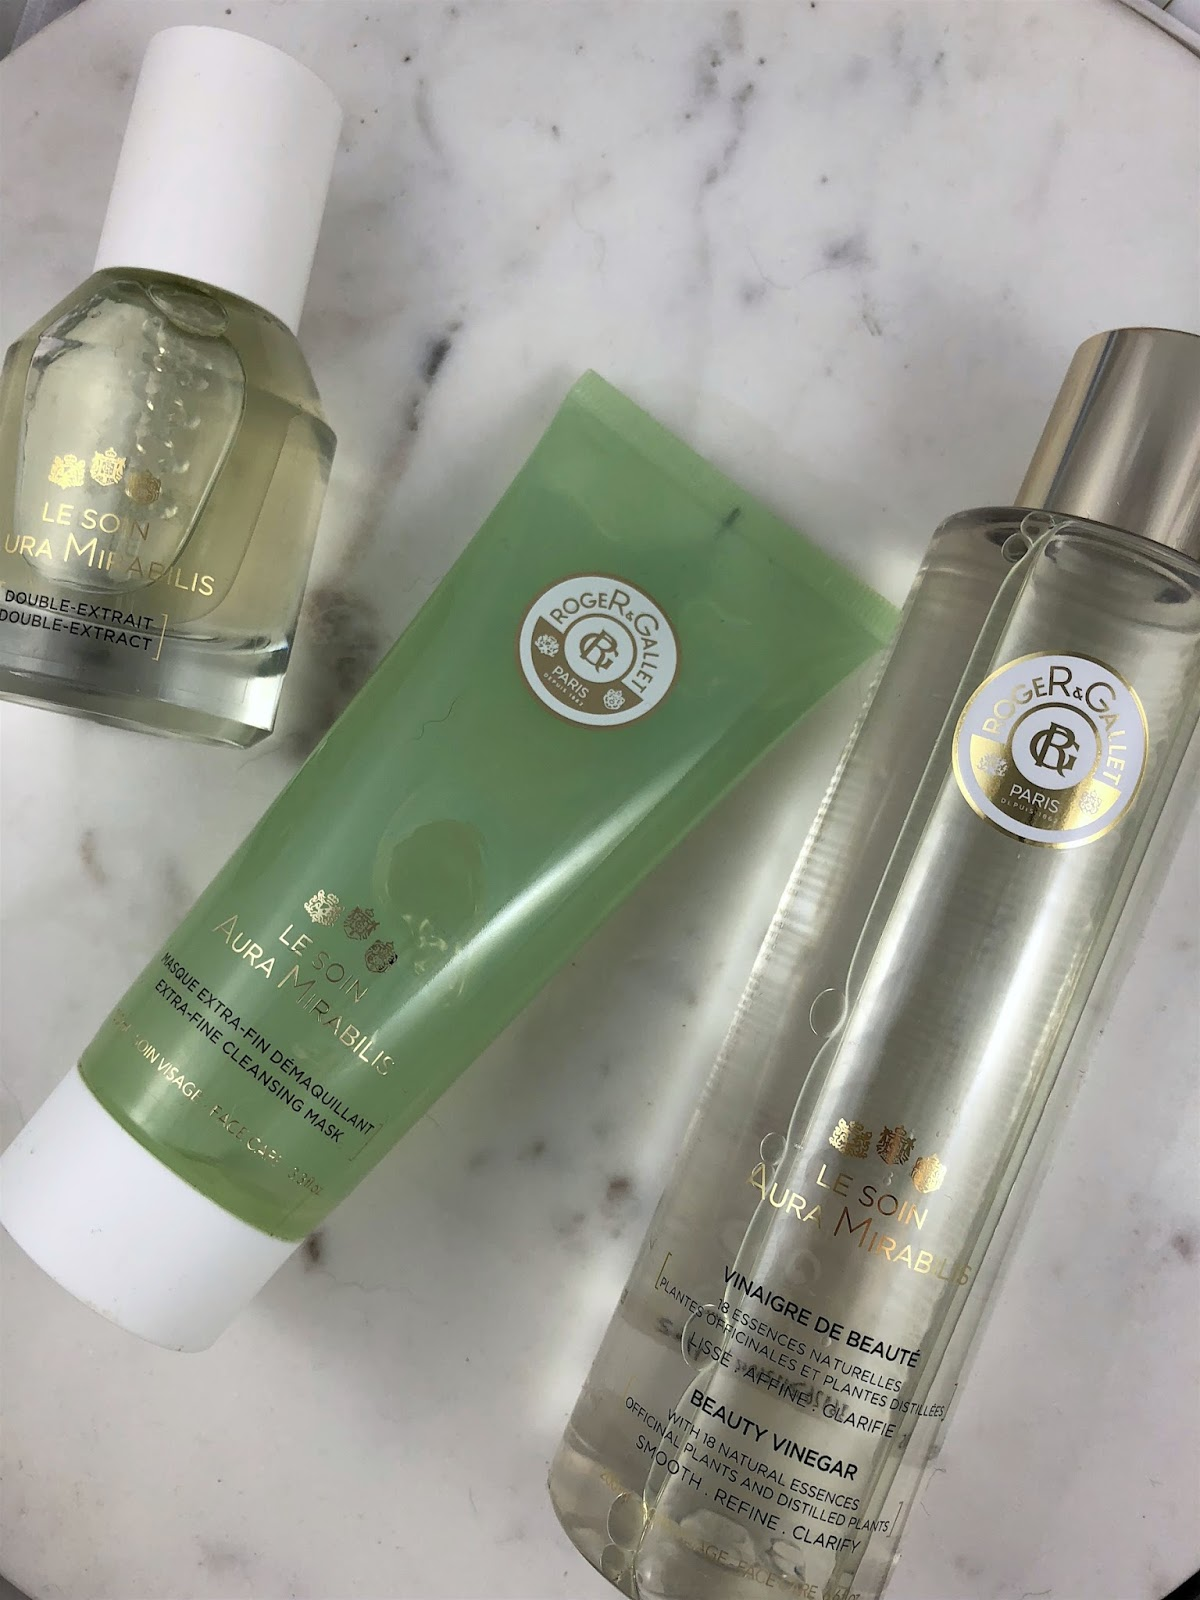 Roger and Gallet Le Soin Aura Mirabilis